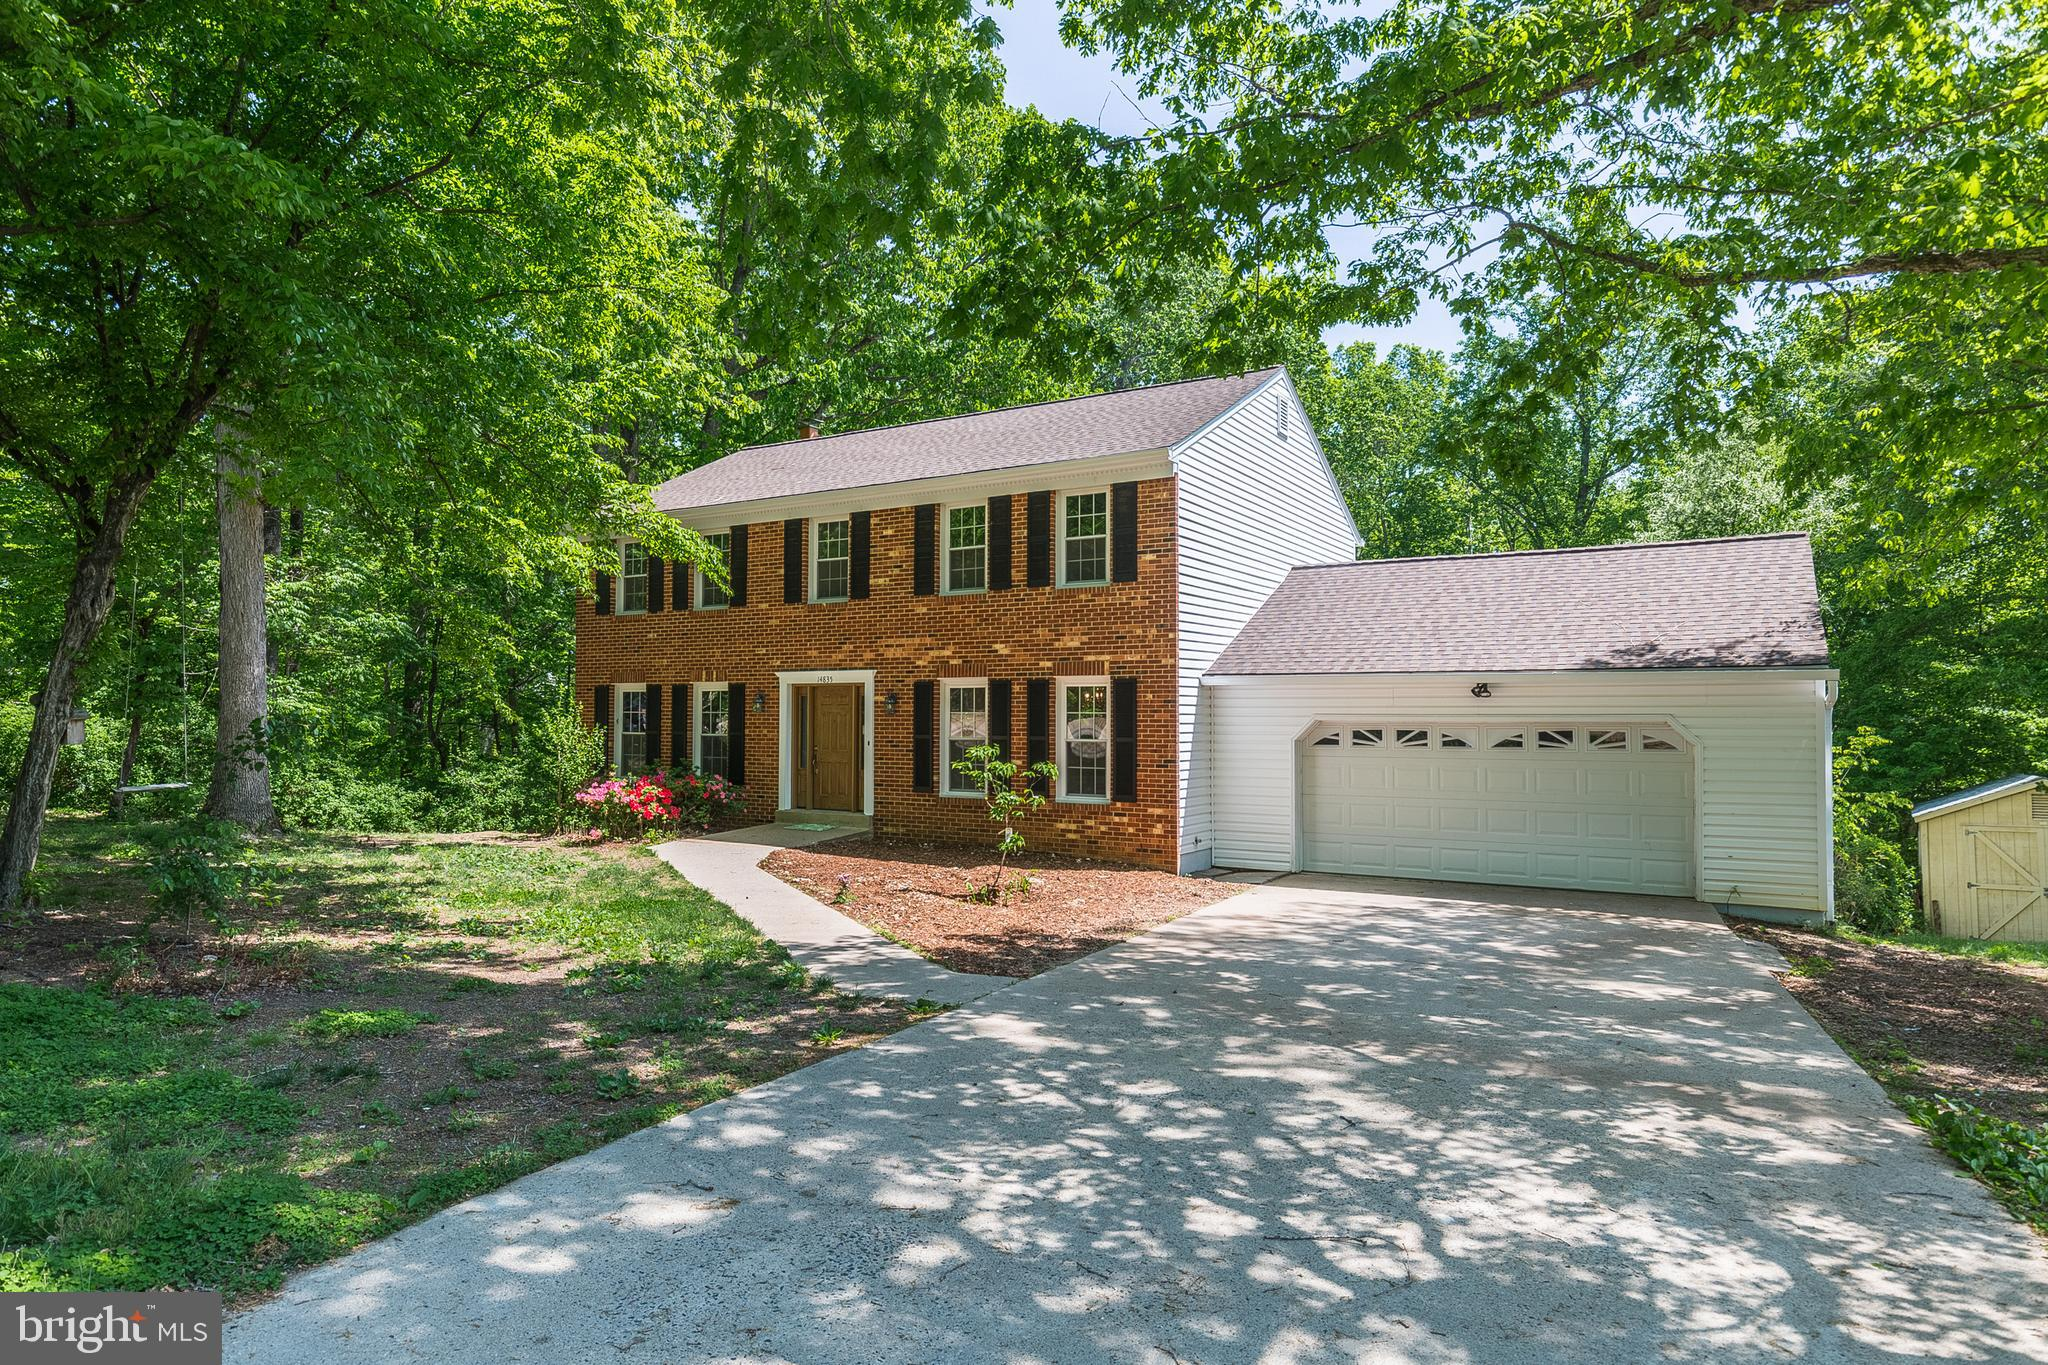 Looking for a different lifestyle away from the hustle & bustle of urban living.  Here it is!  Tucked away on over an acre of lush country living, this beautifully remodeled colonial is oh-so-close to Potomac Mills Mall, historic Manassas & Occoquan & easily within striking distance of Alexandria & DC! Walk, bike or drive to the nearby grocery story & local restaurants & enjoy easy access commuter options! Slip through the front door & fall in love with the neutral Pottery Barn interior filled with fresh custom paint, plush new carpet & gleaming hardwood floors! Entertain in the formal living & dining rooms or relax in the cozy family room! Prep for a party in the spacious kitchen replete with gorgeous granite counters or enjoy movie/game night in the lower level Rec Room offering a cool bar area & second fireplace!  Dream the day away on the spacious deck overlooking a secluded yard! And do whatever the heck you want in this non-HOA community!